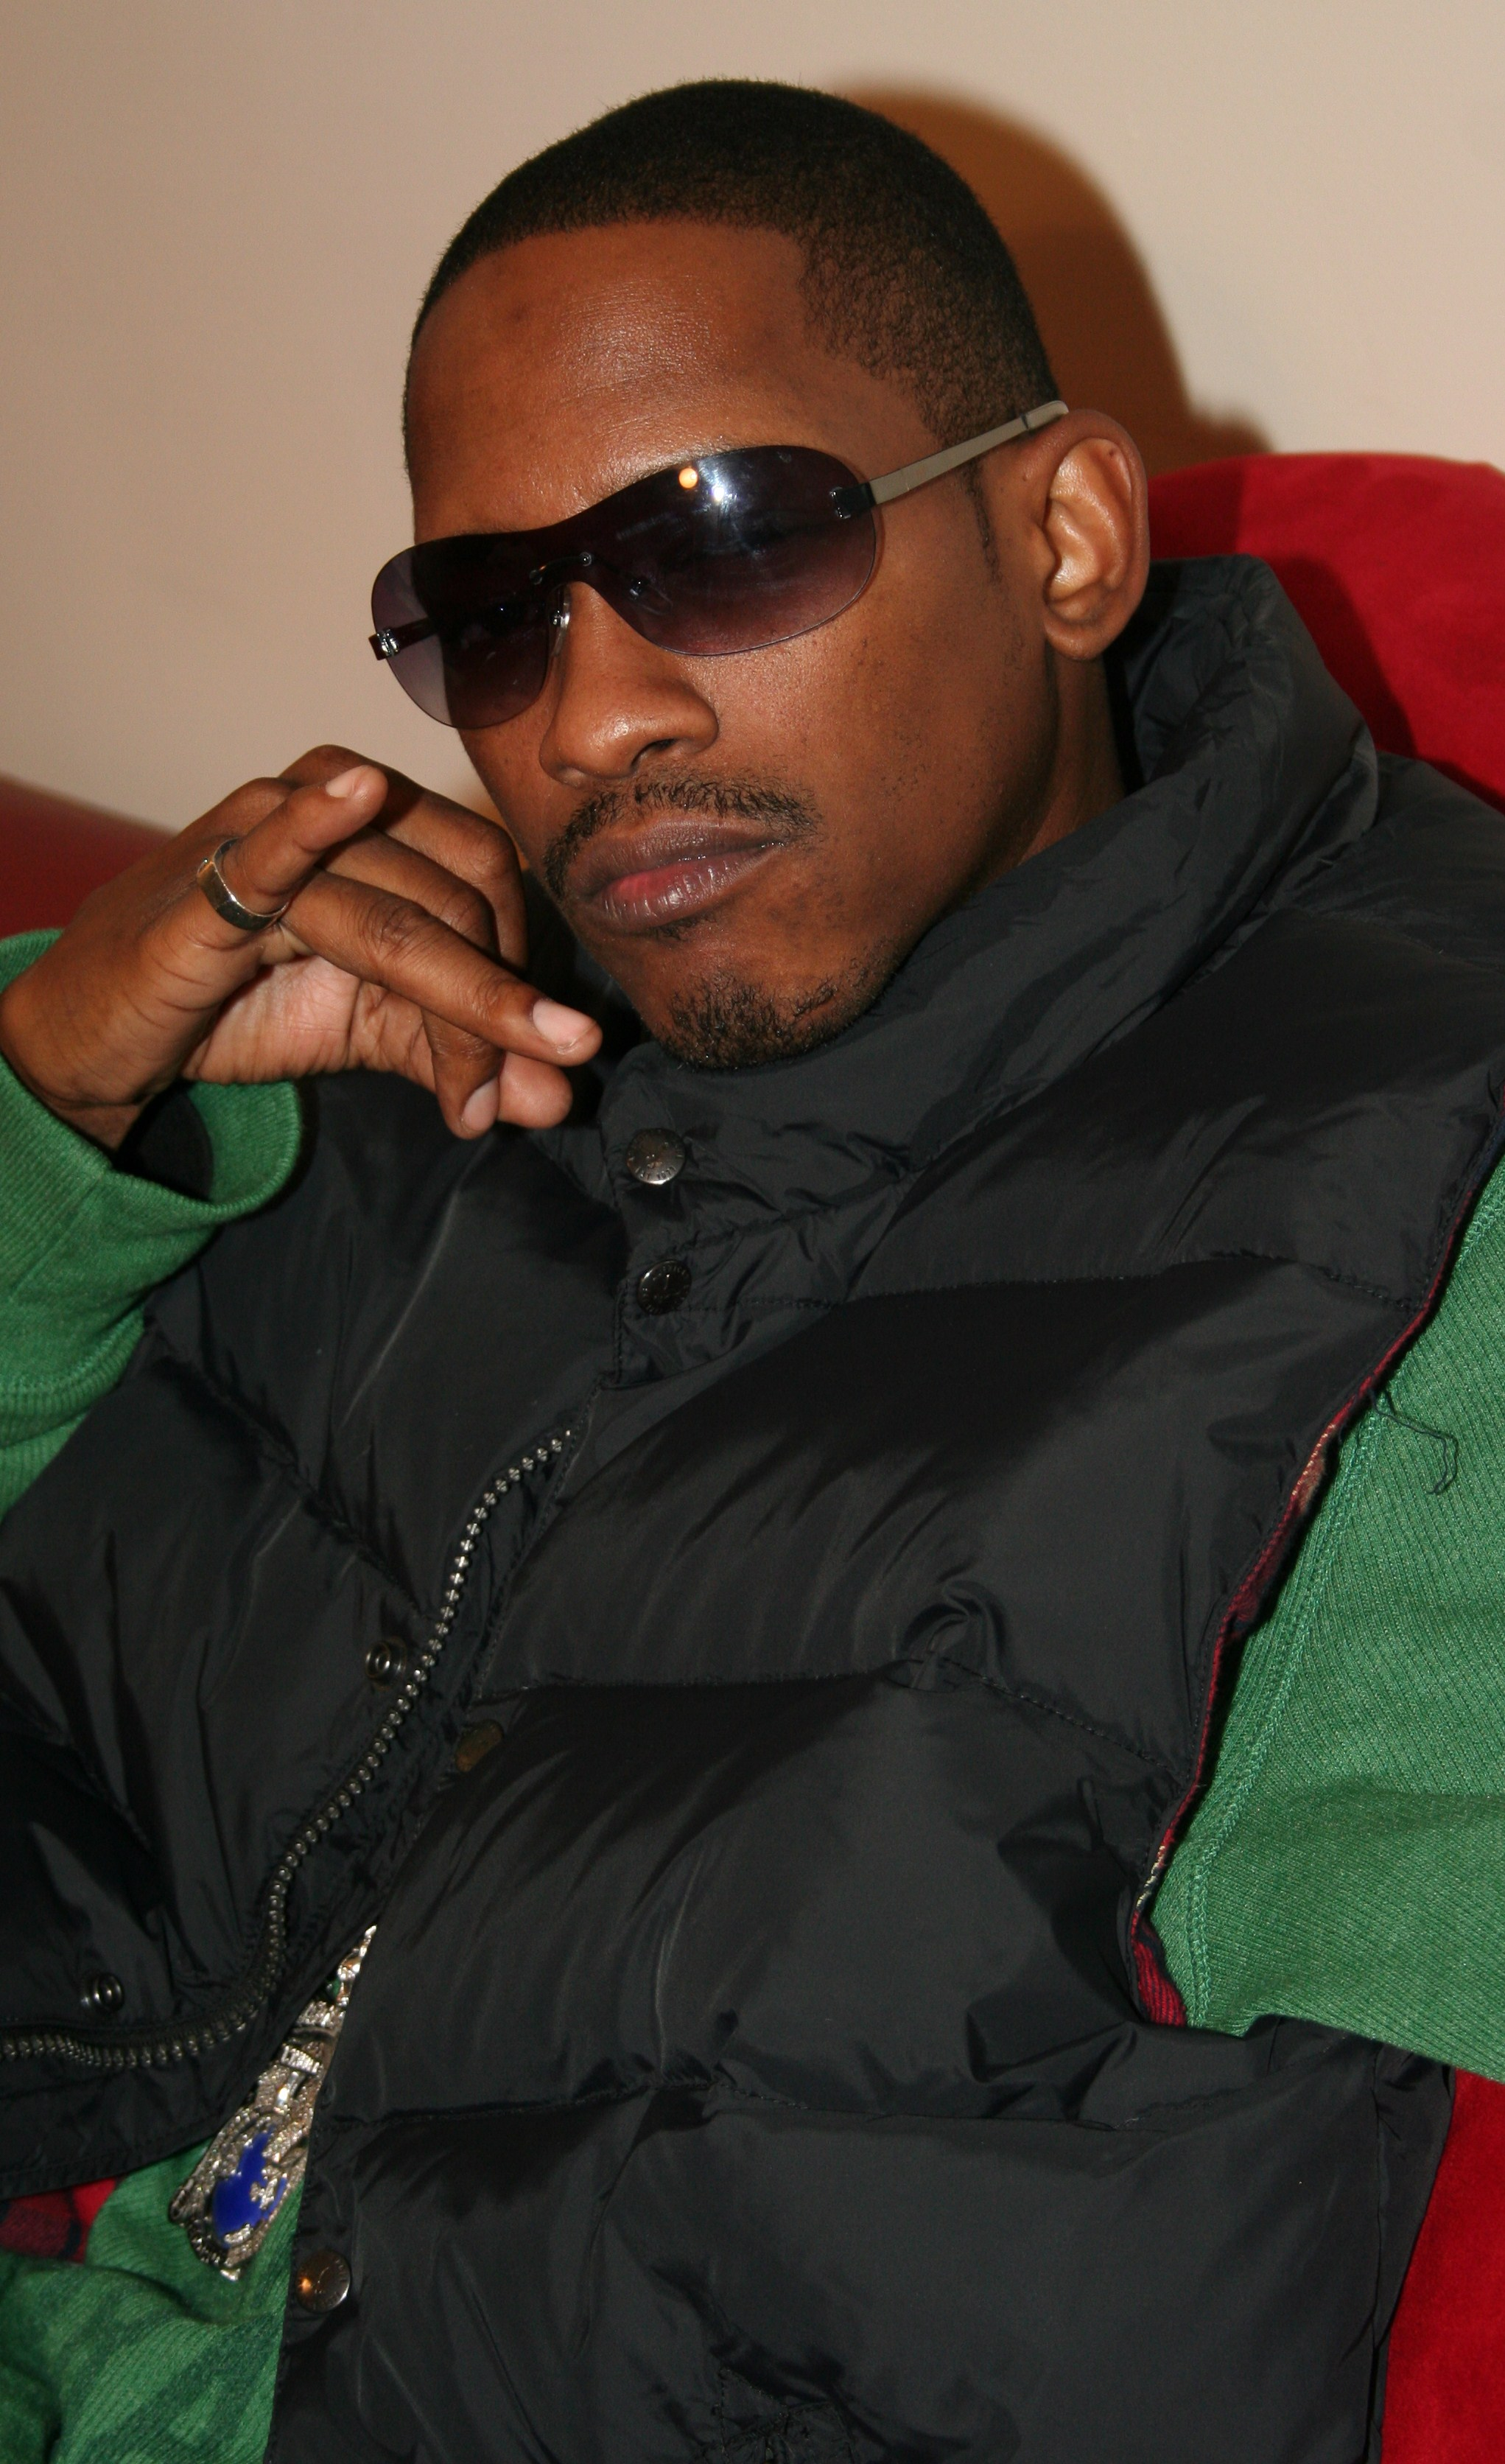 Kurupt wearing a jacket while sitting on the couch.jpg